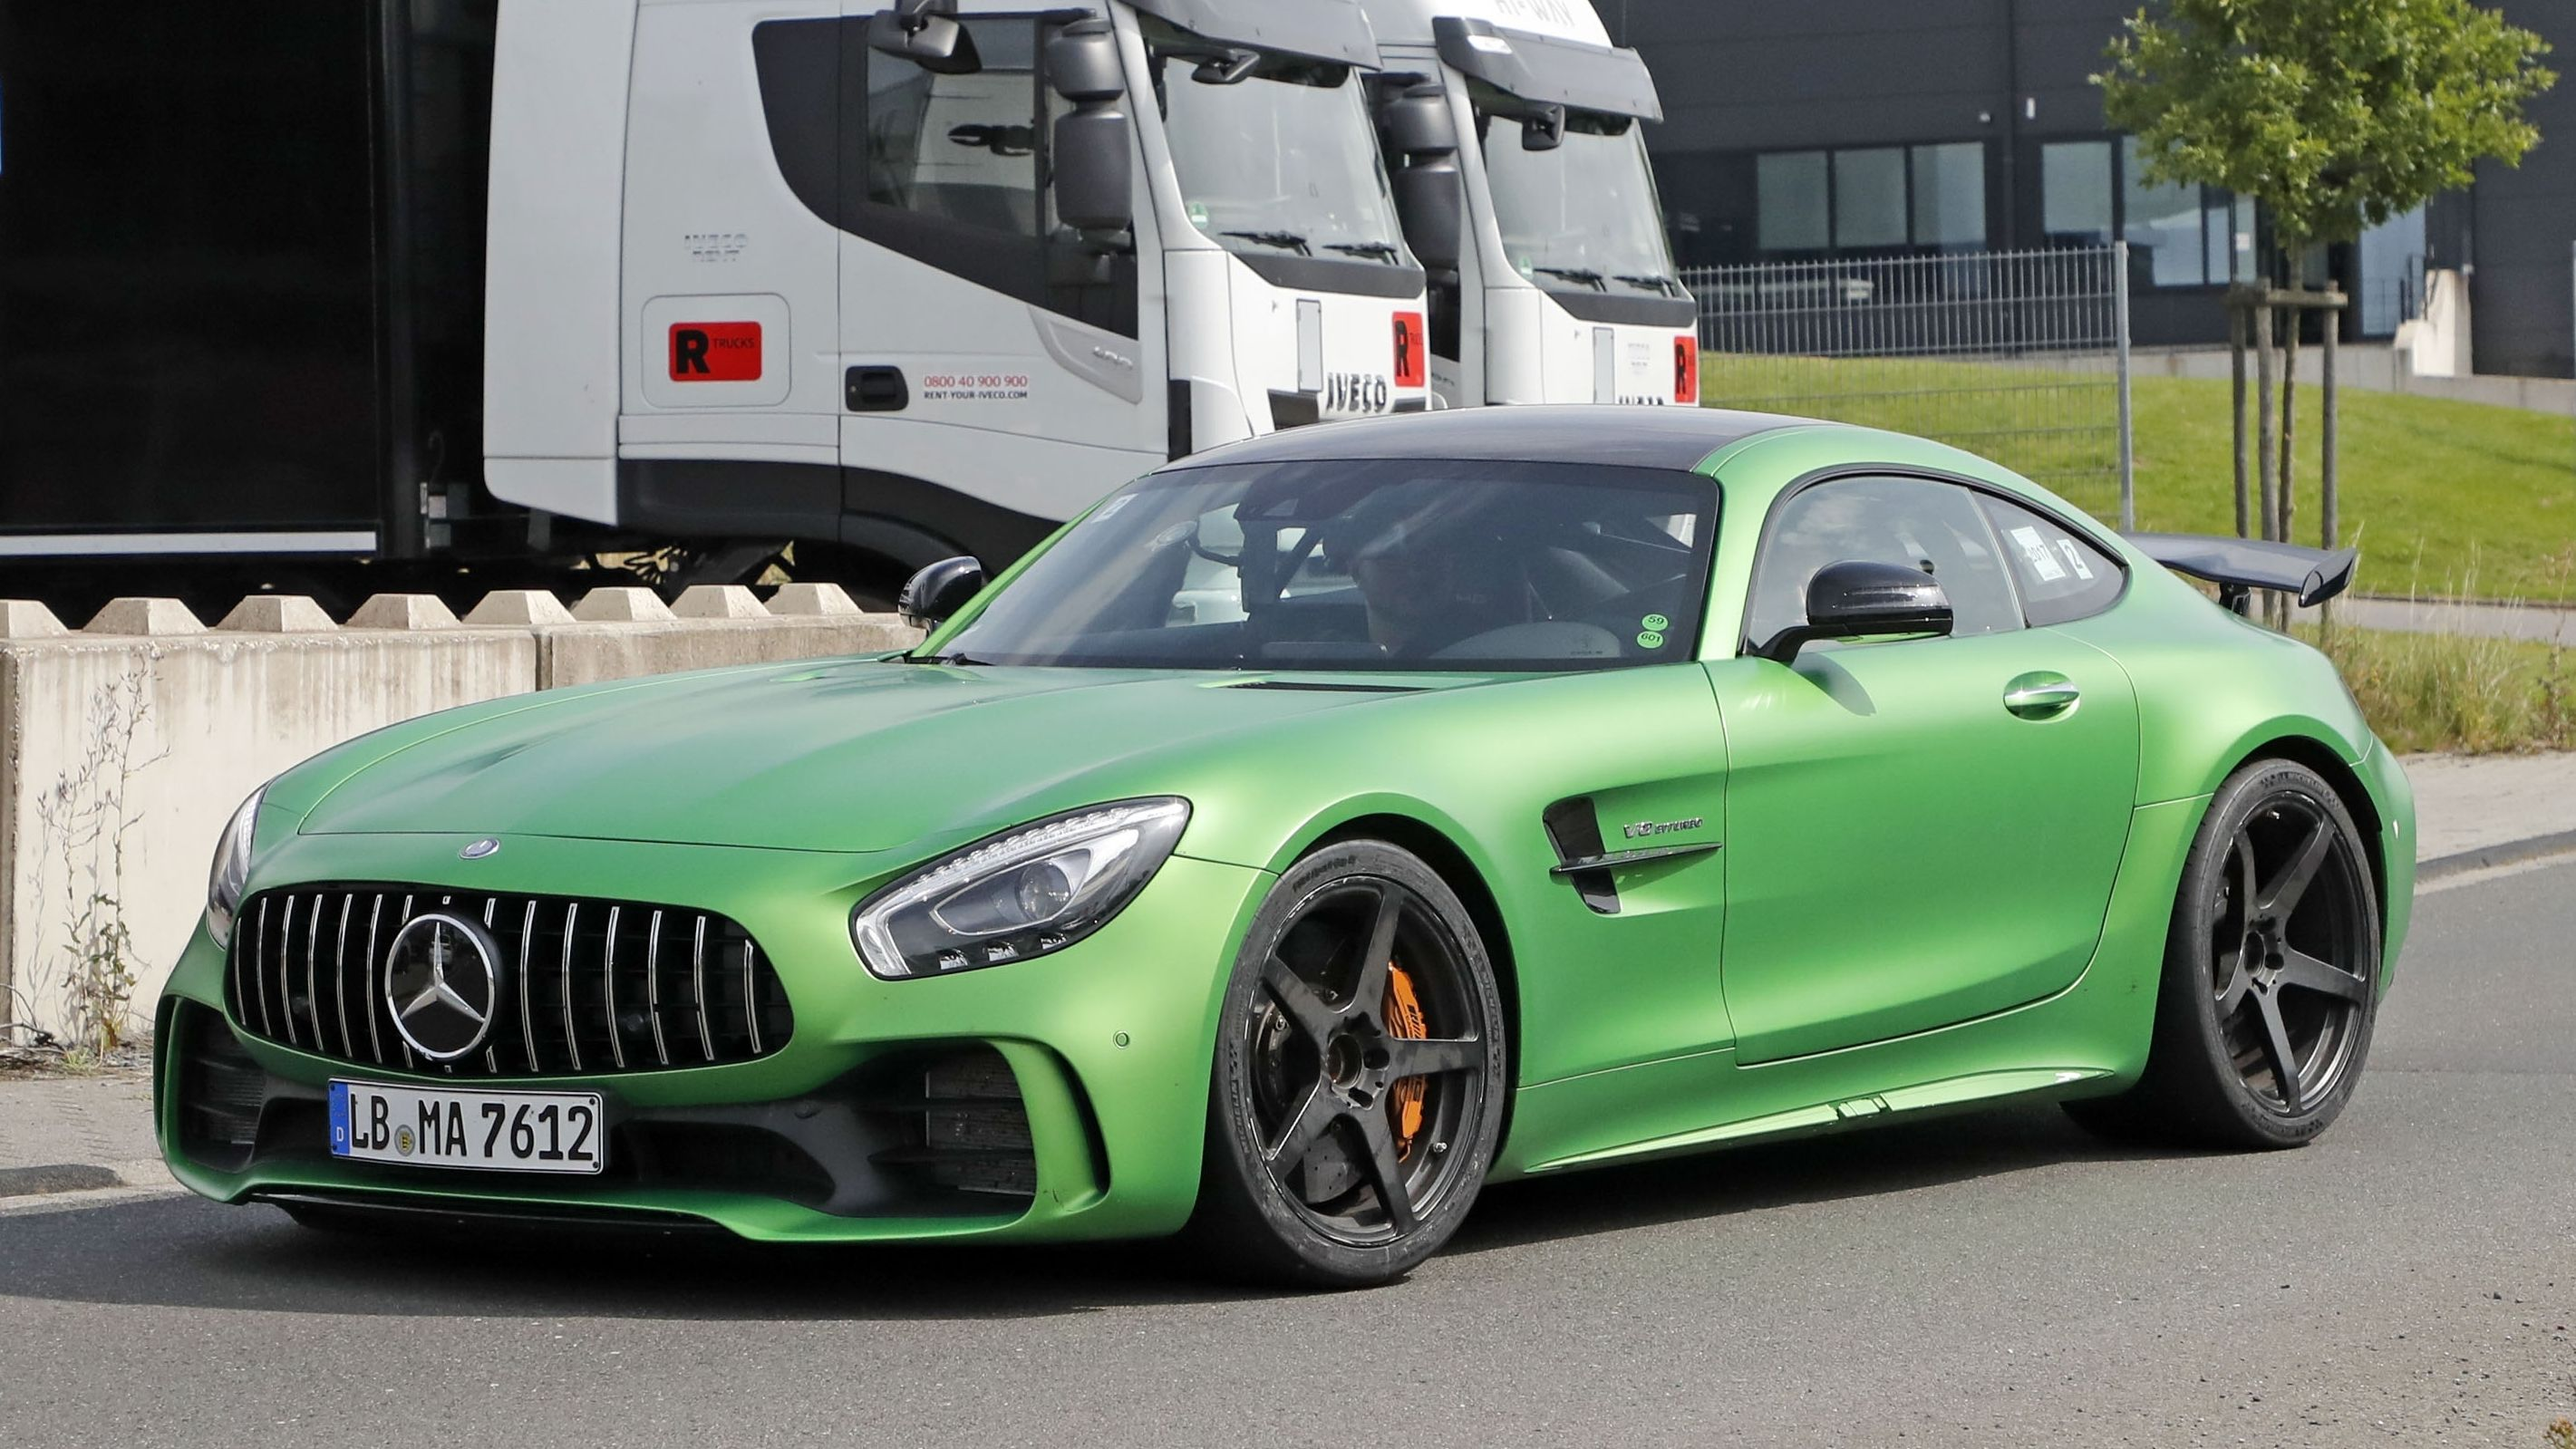 Now That Mercedes Has Launched The Amg Gt 4 Door The Amg Gt Black